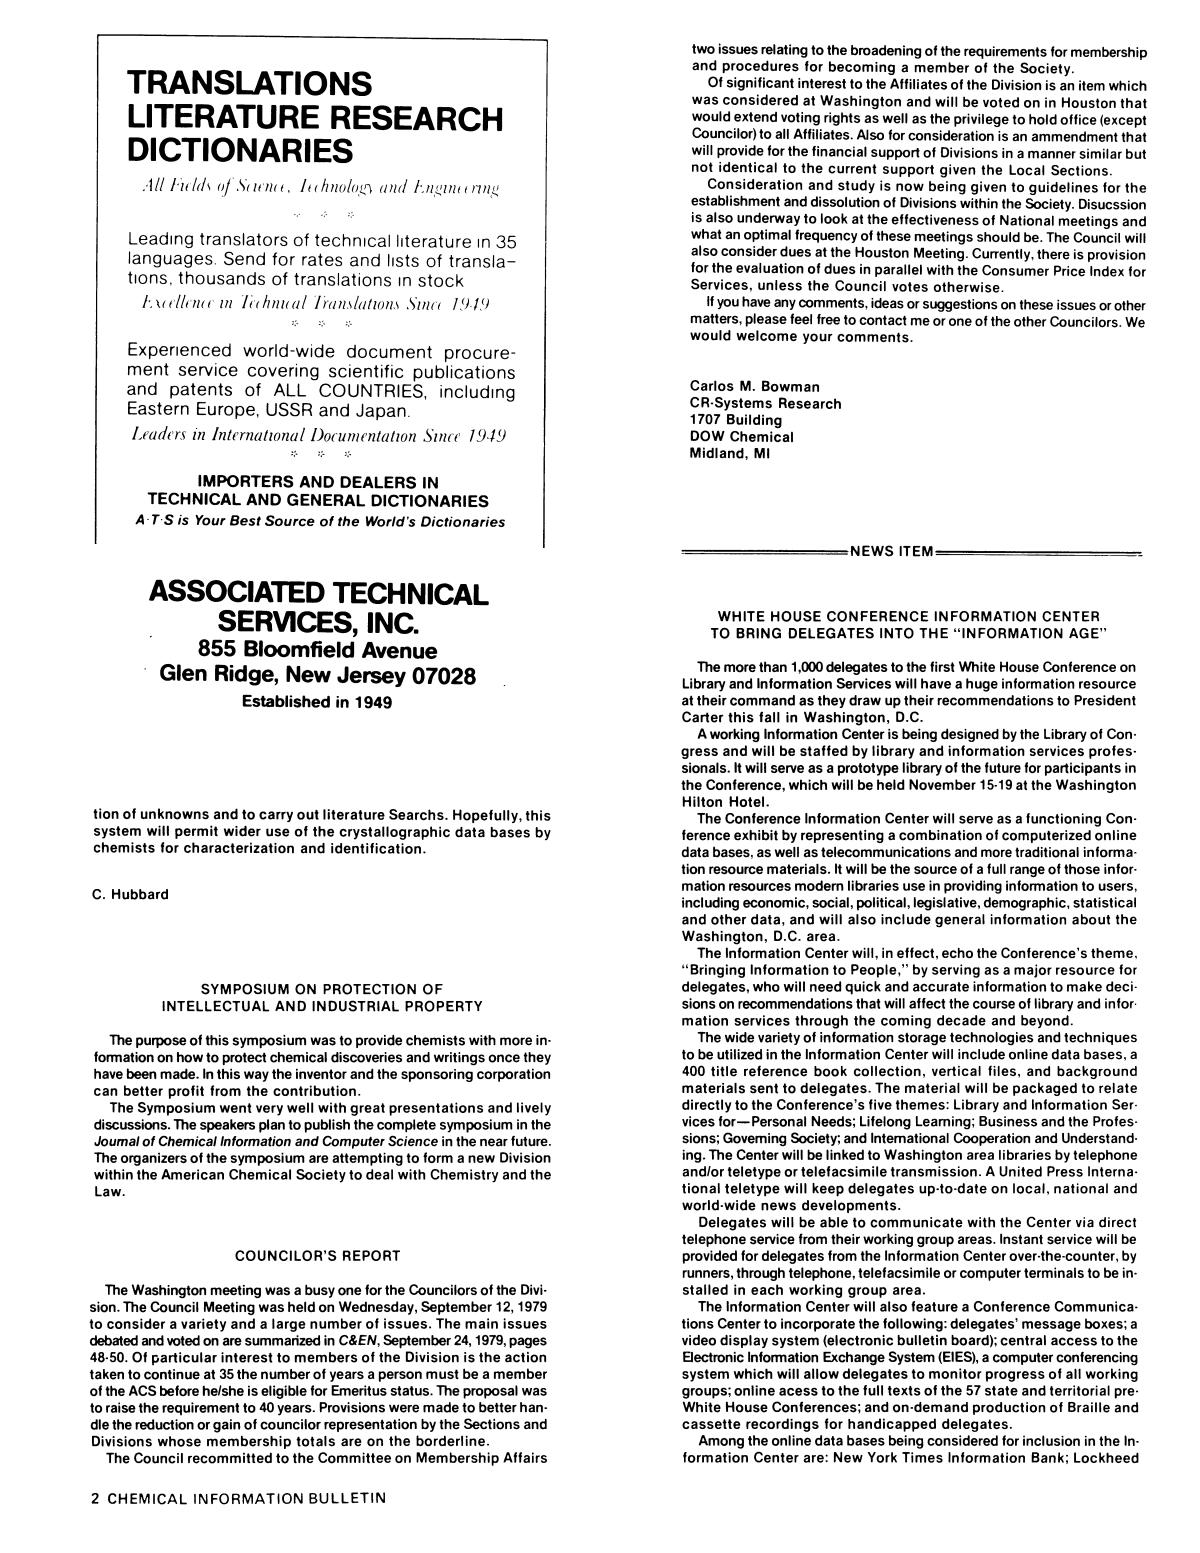 Chemical Information Bulletin, Volume 31, Number 3, Fall/Winter 1979                                                                                                      2